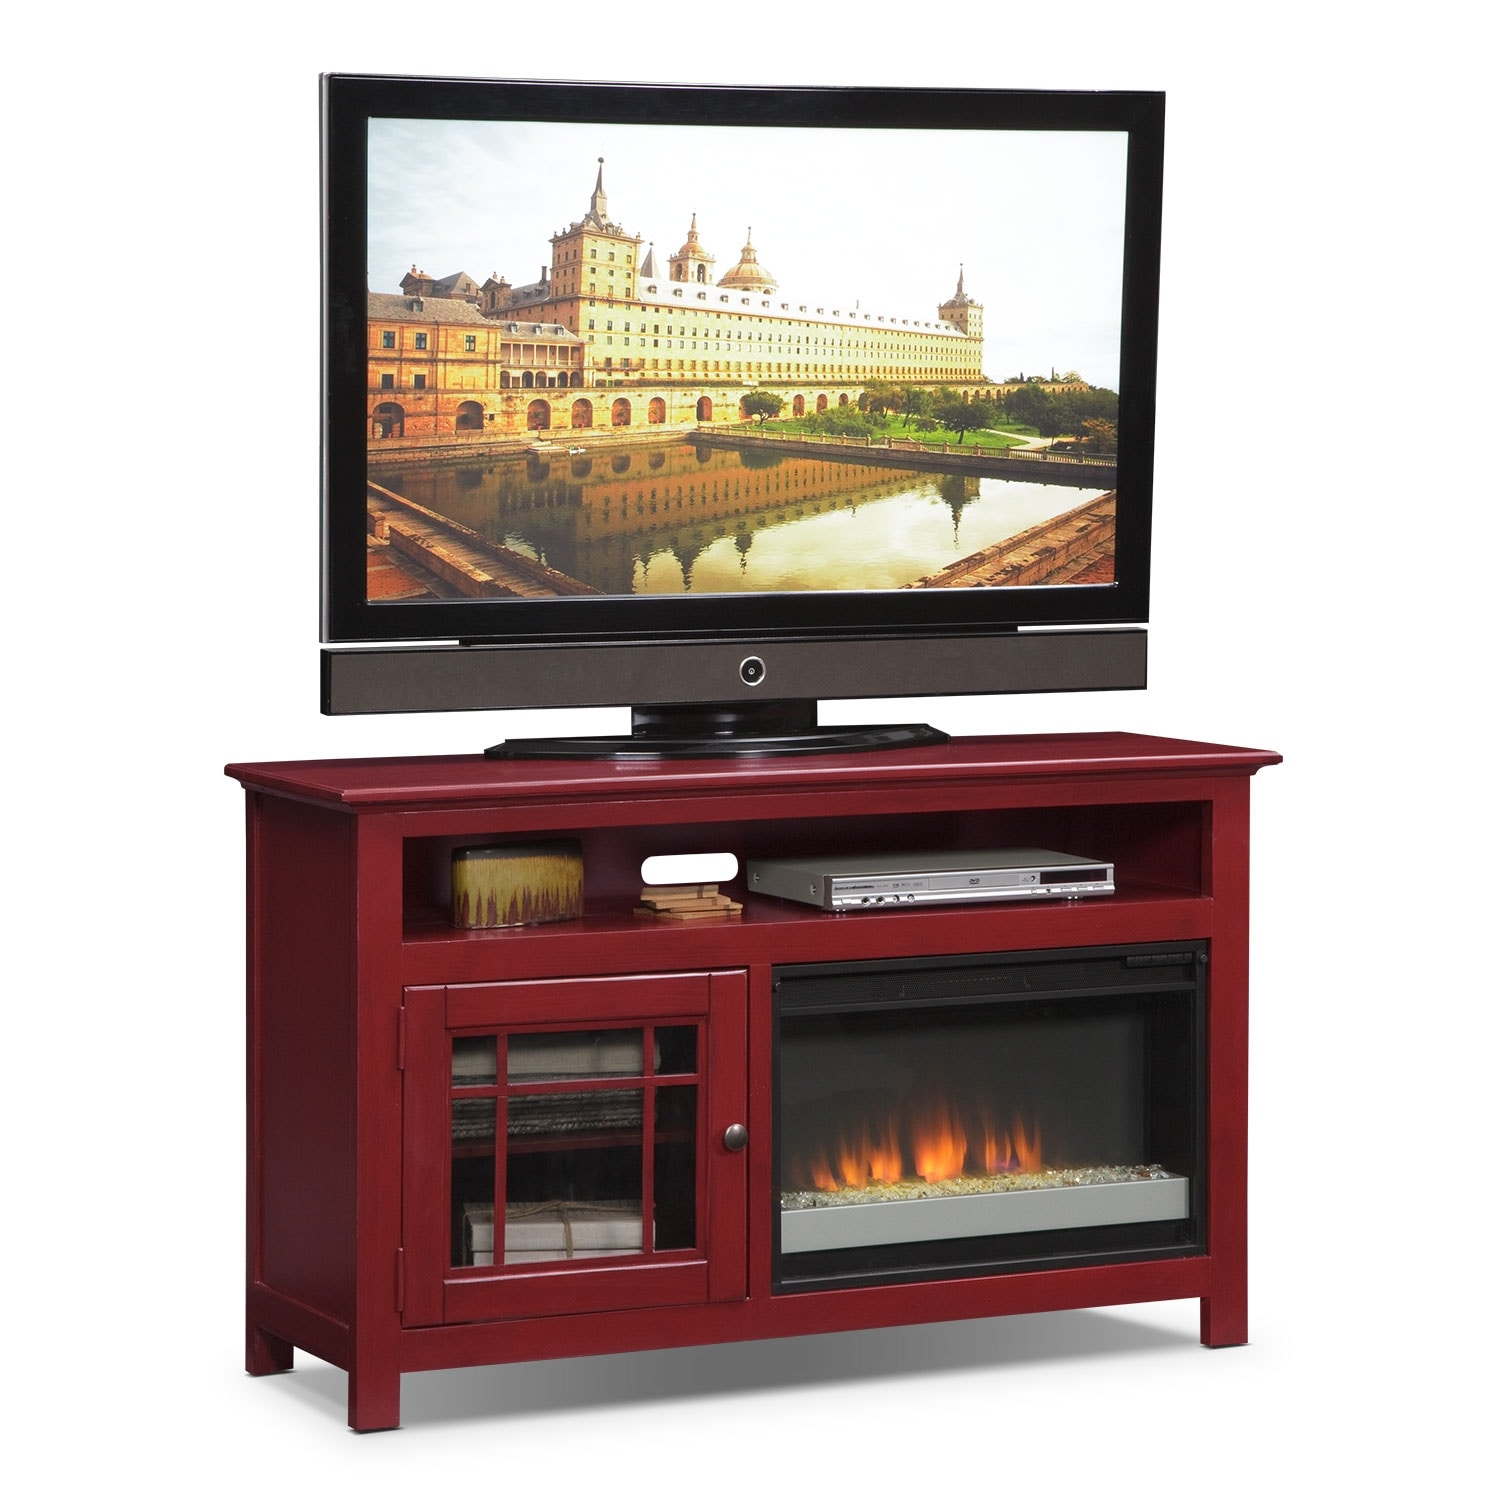 "Merrick 54"" Fireplace TV Stand with Contemporary Insert - Red"